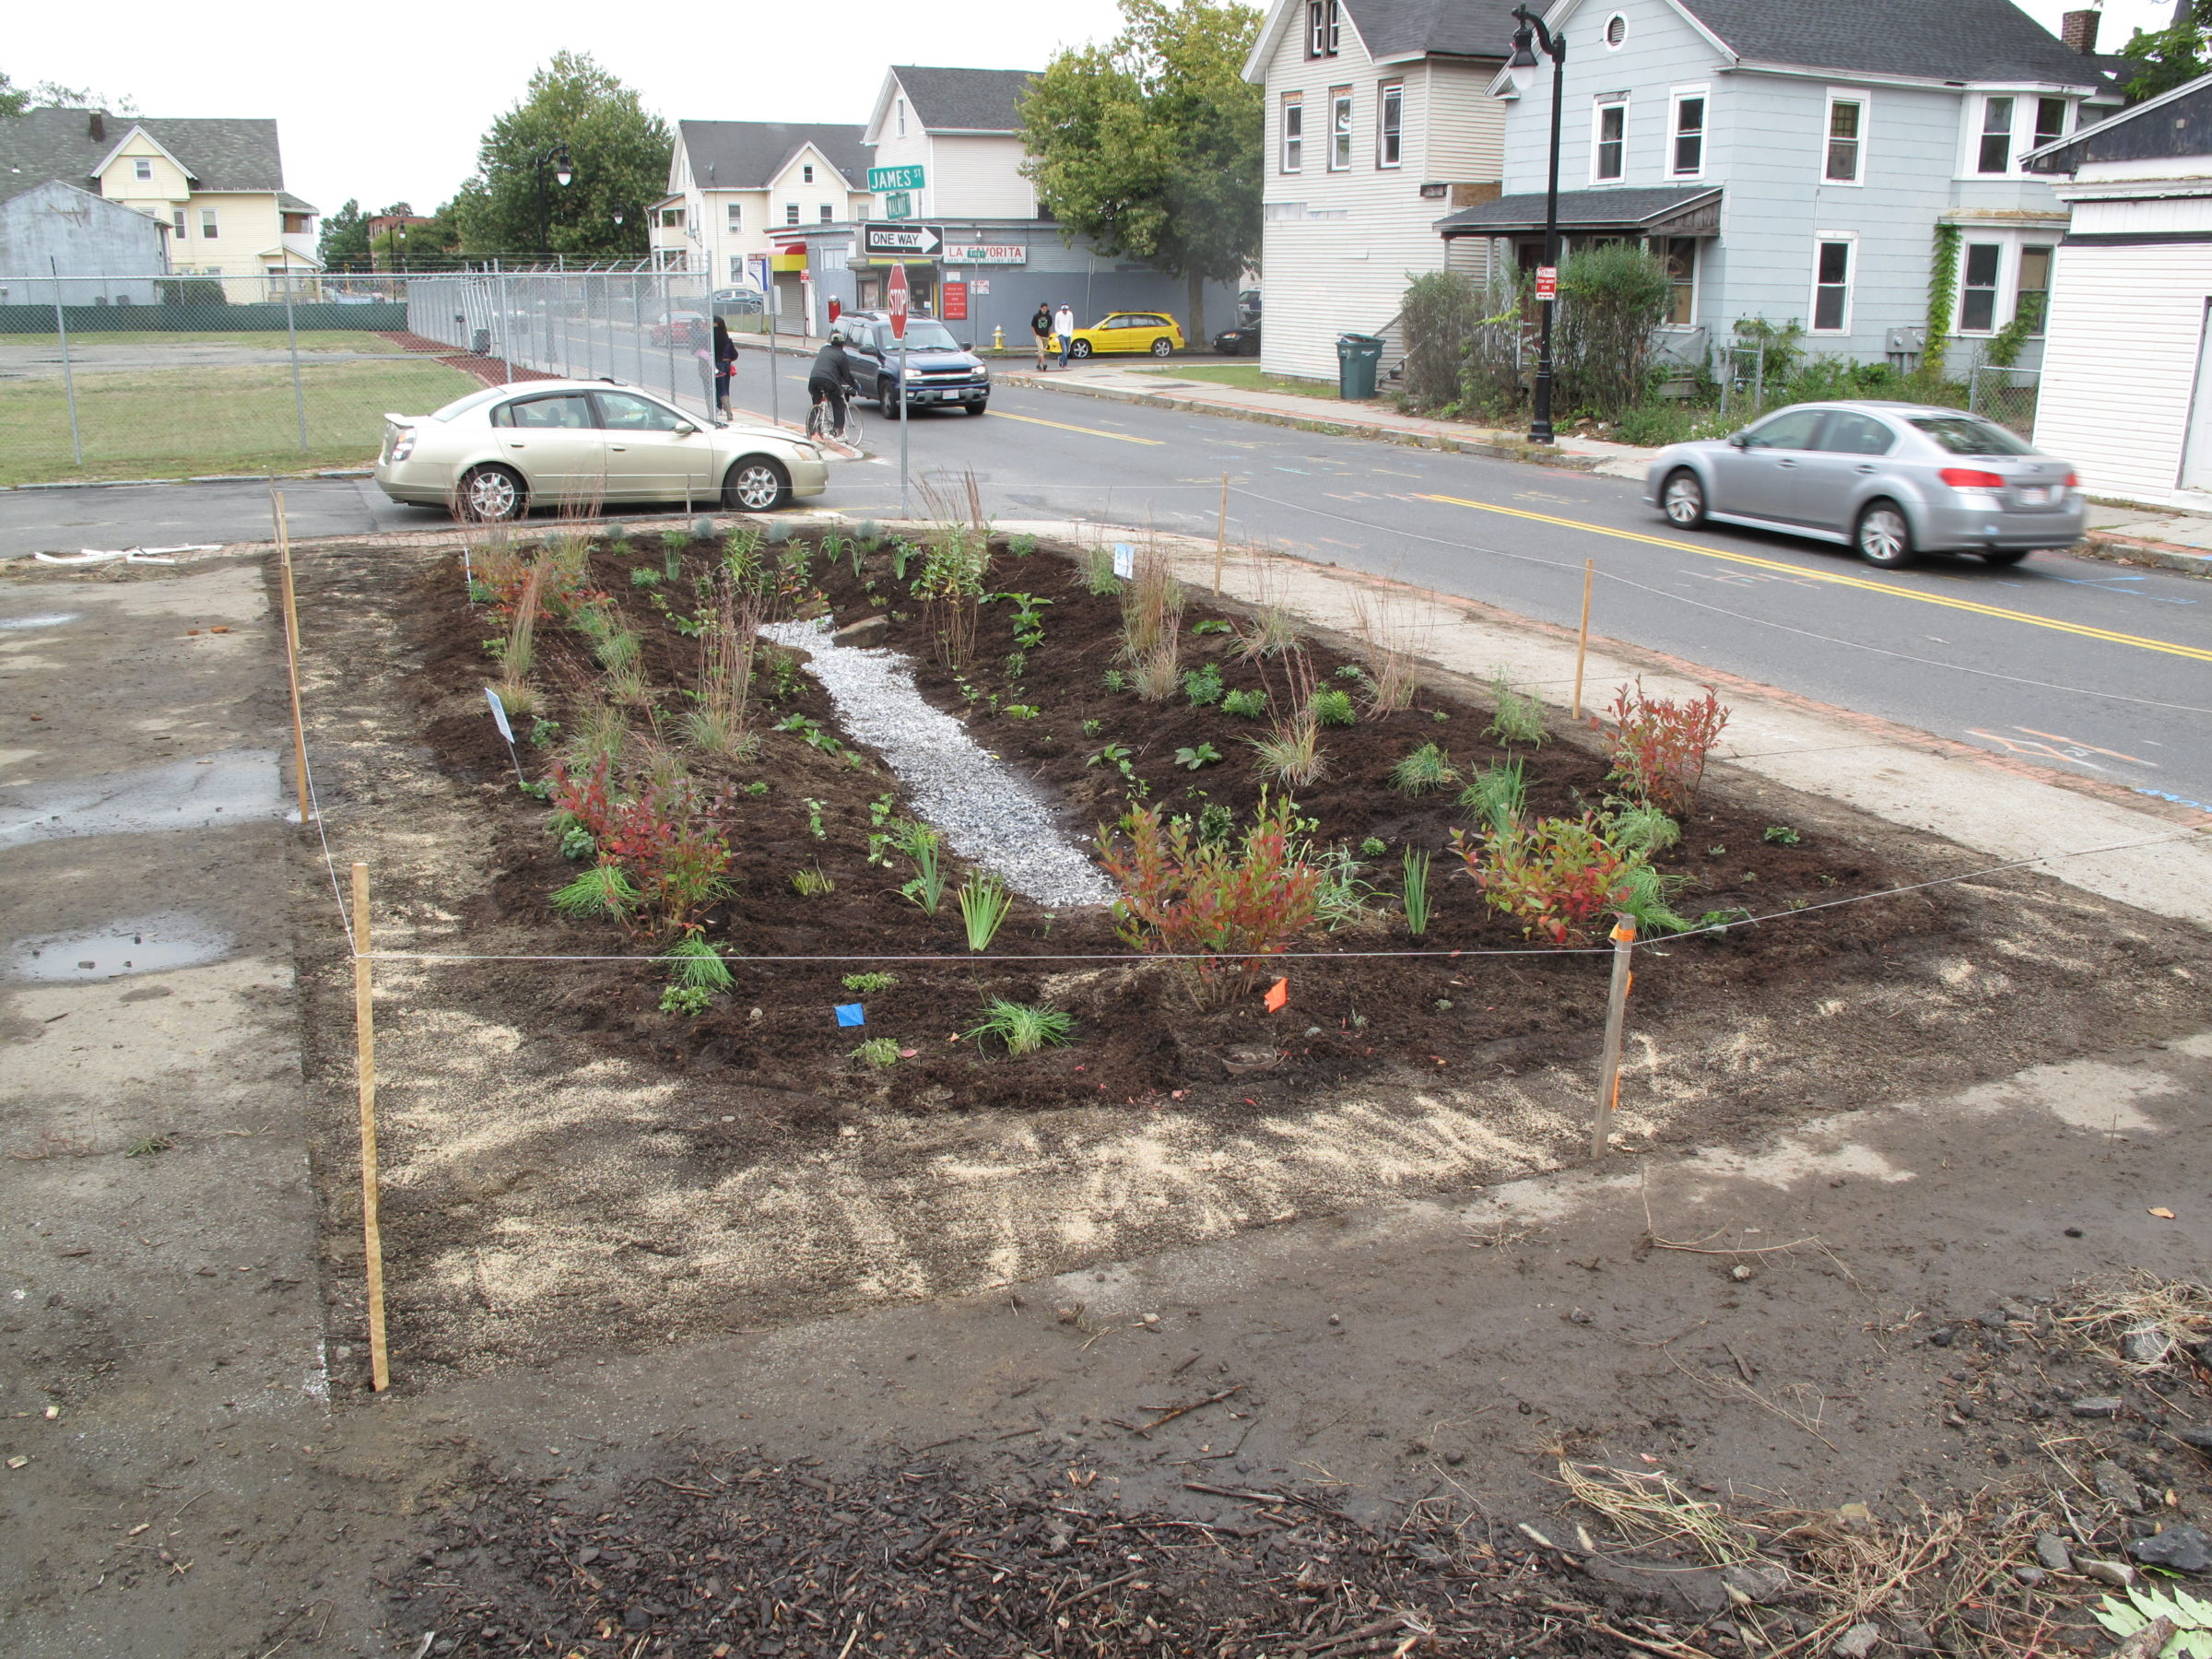 The Walnut Street lot after planting a rain garden